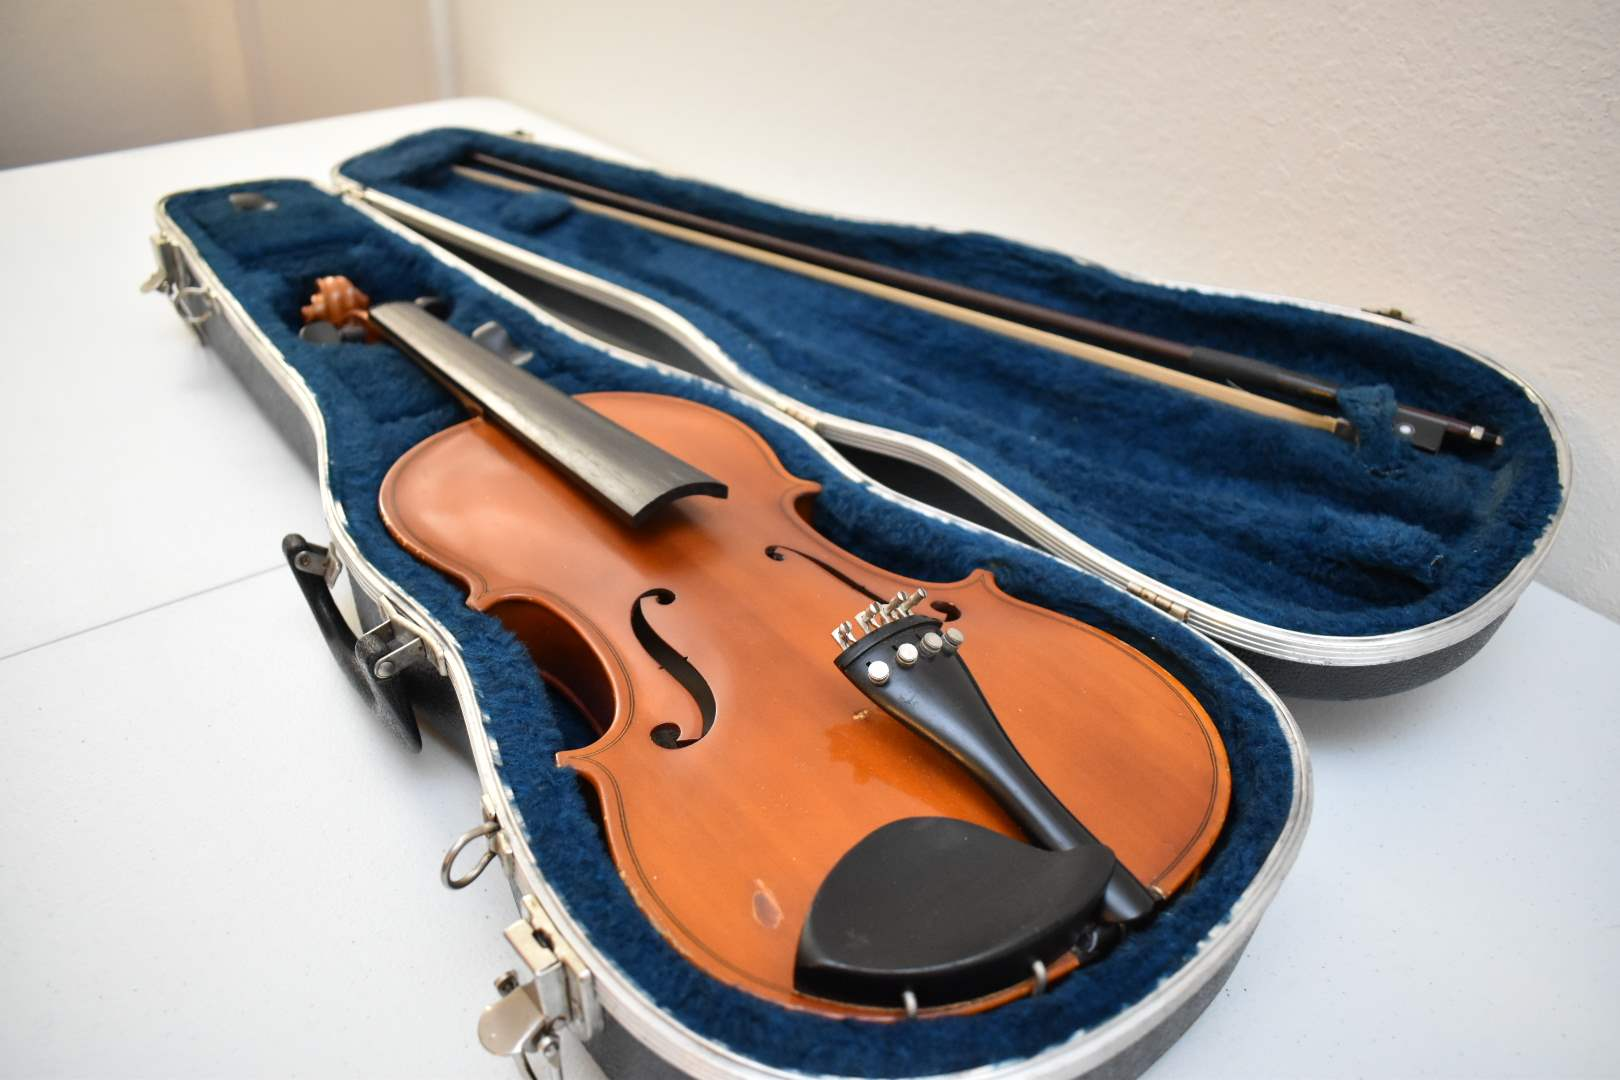 Glaesel Student Violin with Bow and Case